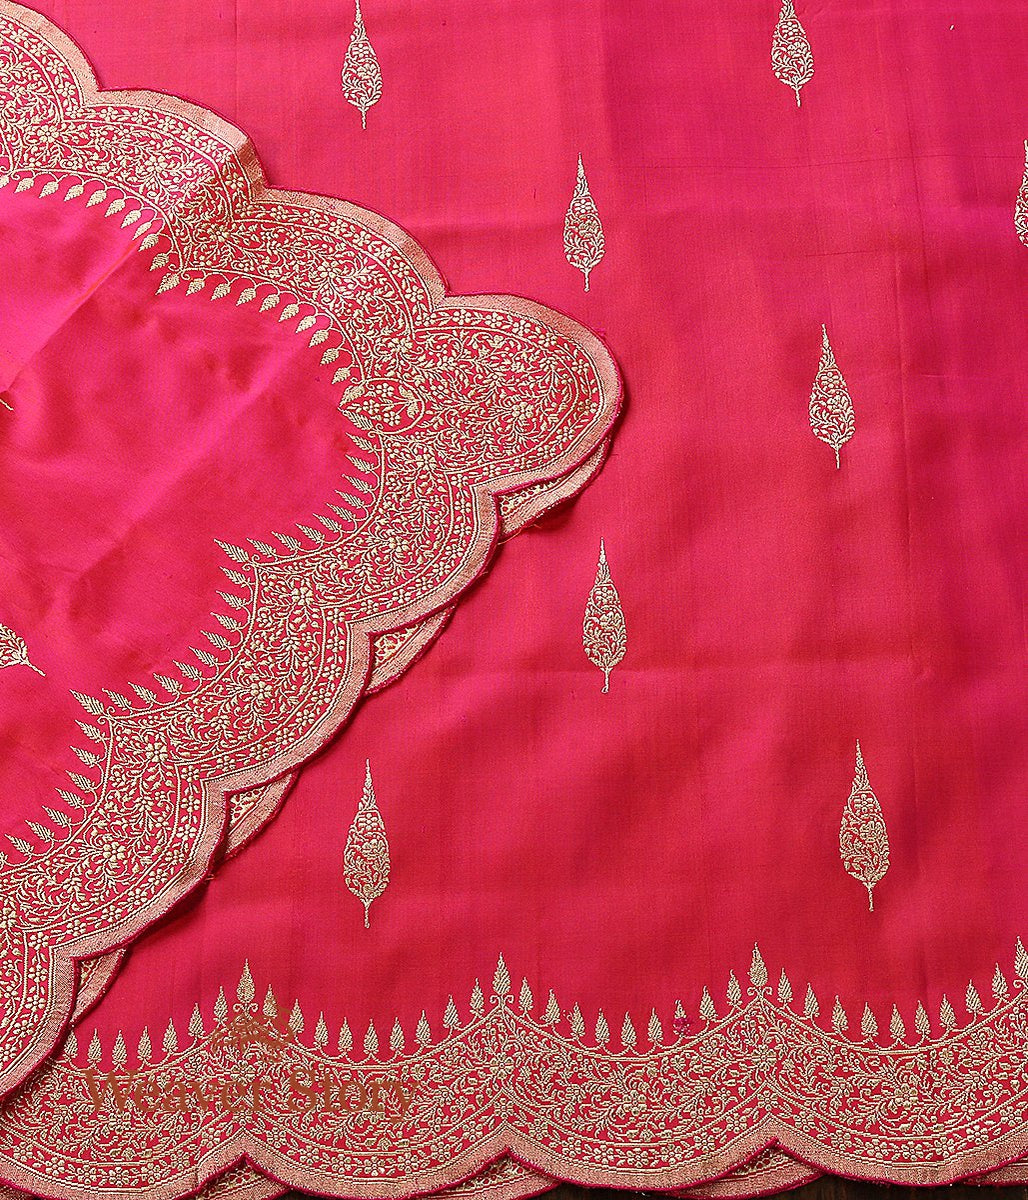 Handwoven Pink Banarasi Dupatta with Scalloped Borders